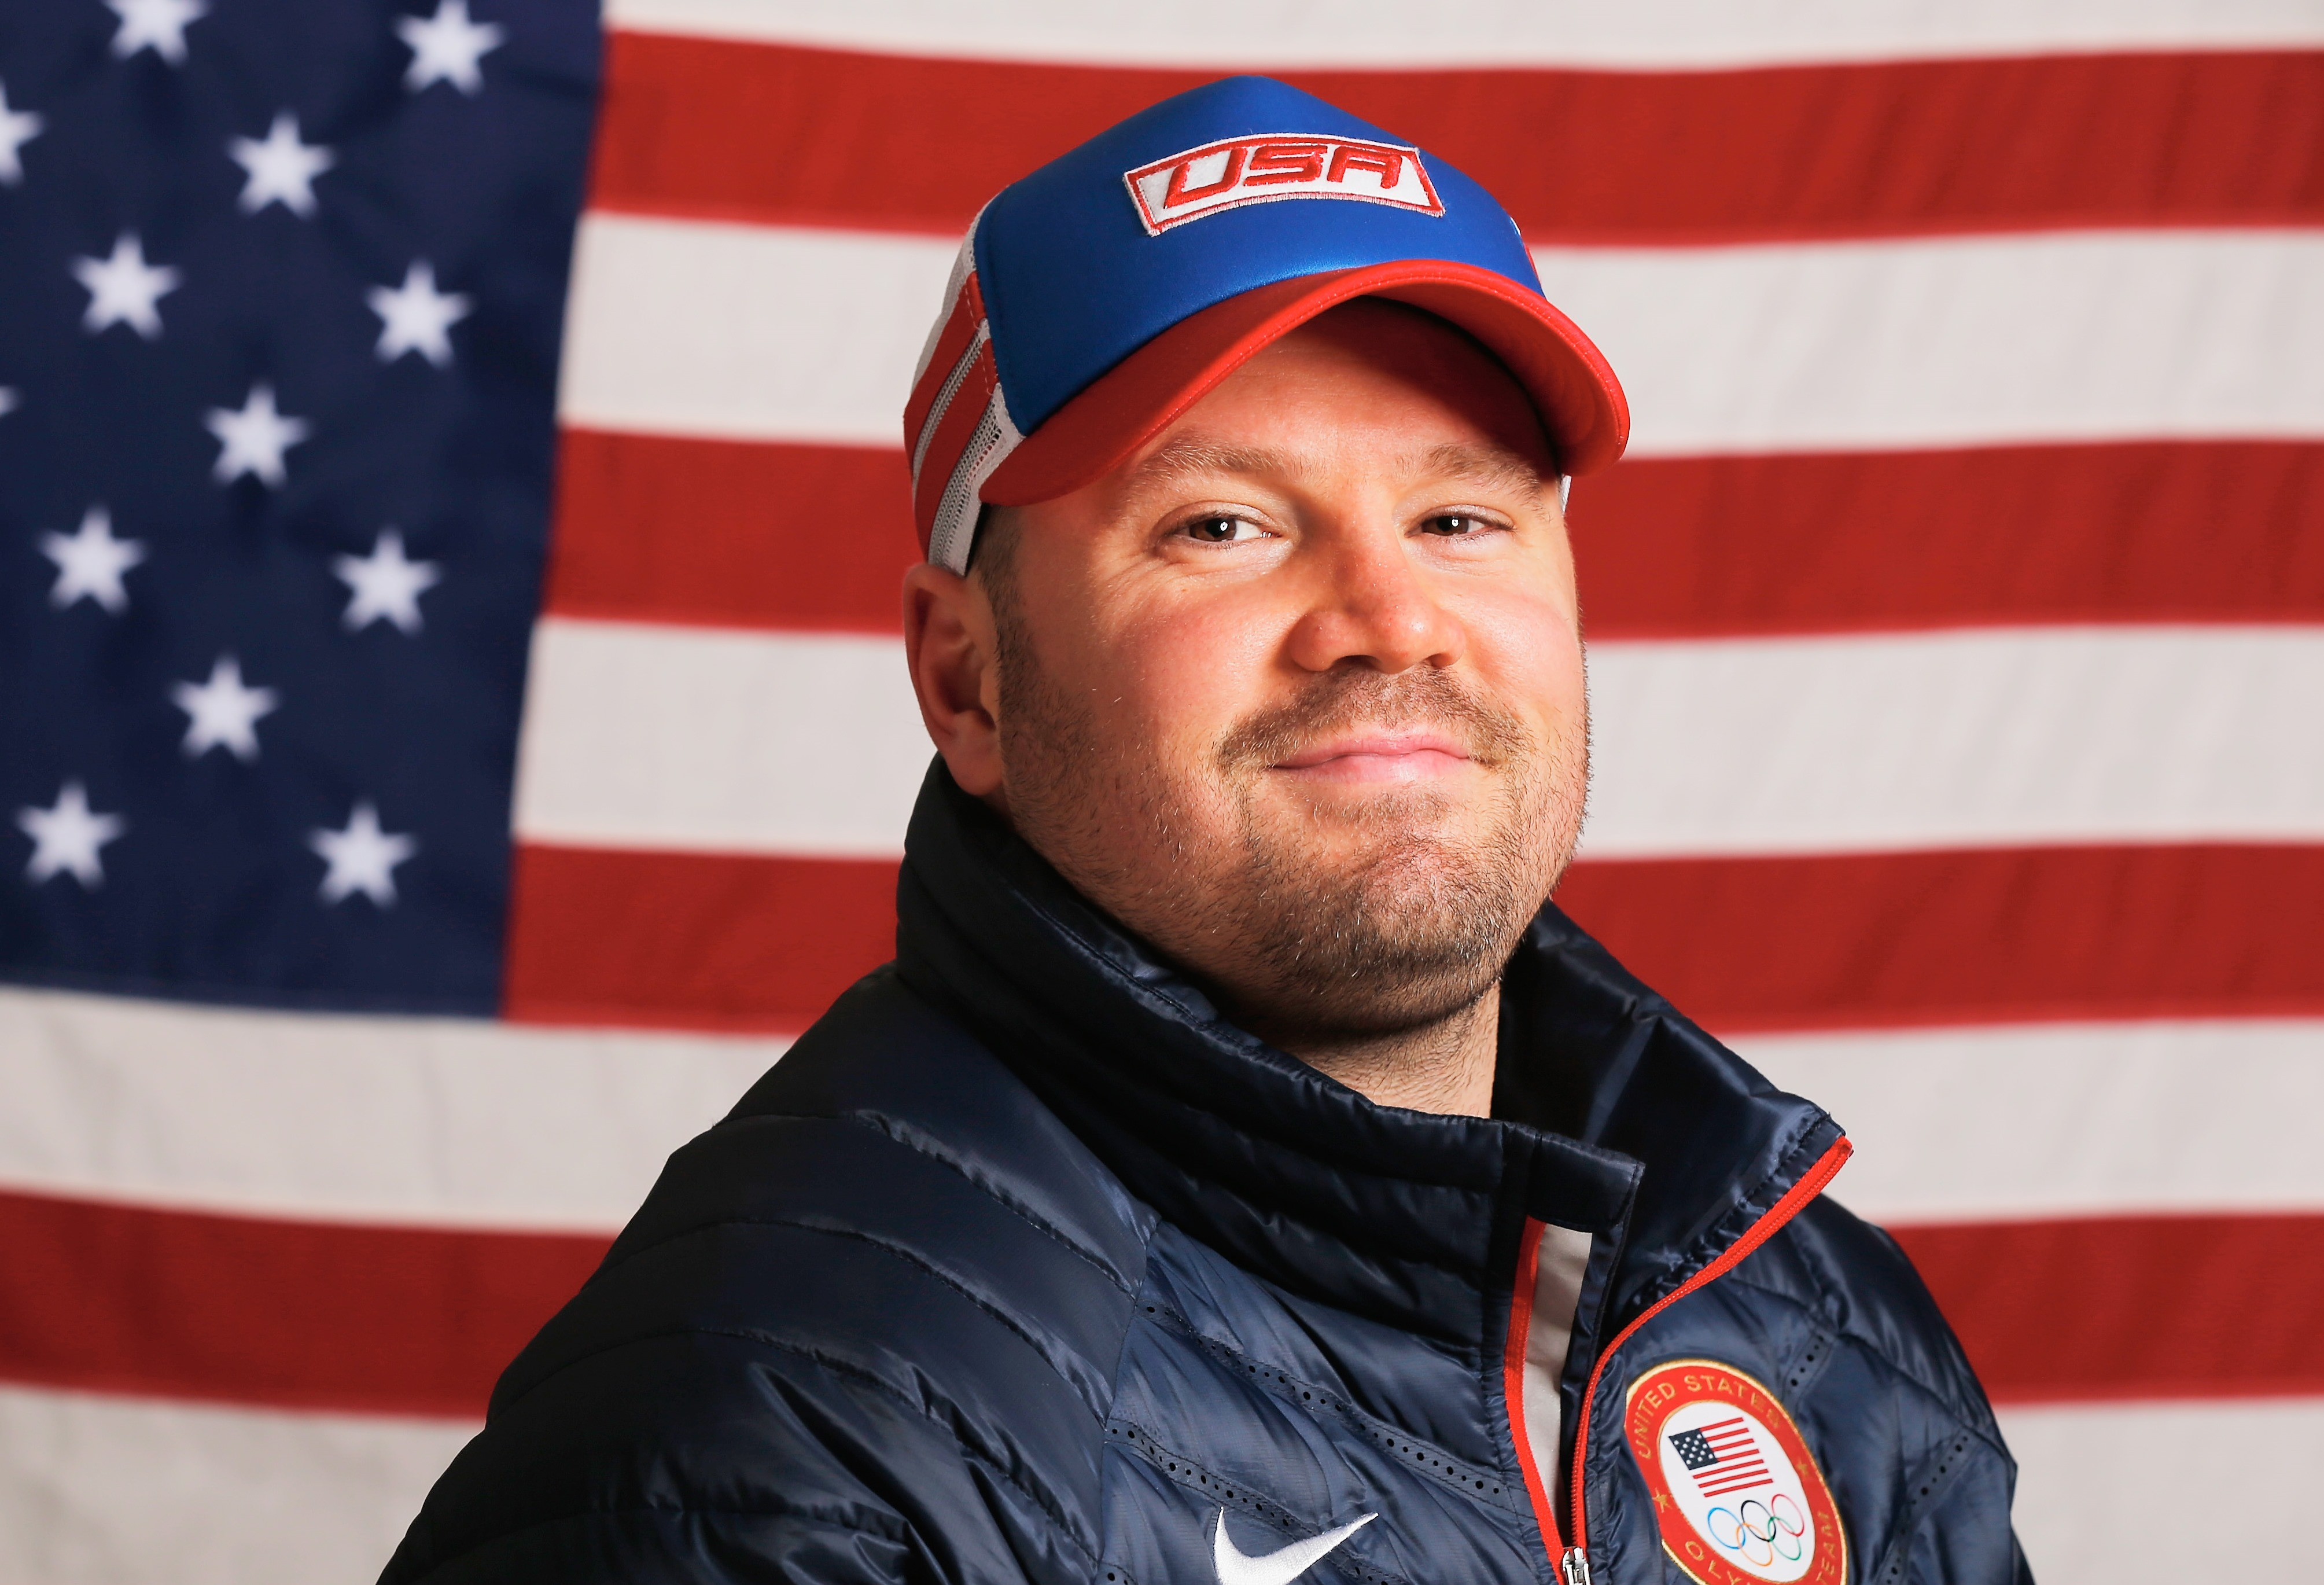 U.S. Olympic bobsledder Steven Holcomb, 37, was found dead Saturday. (Getty Images)